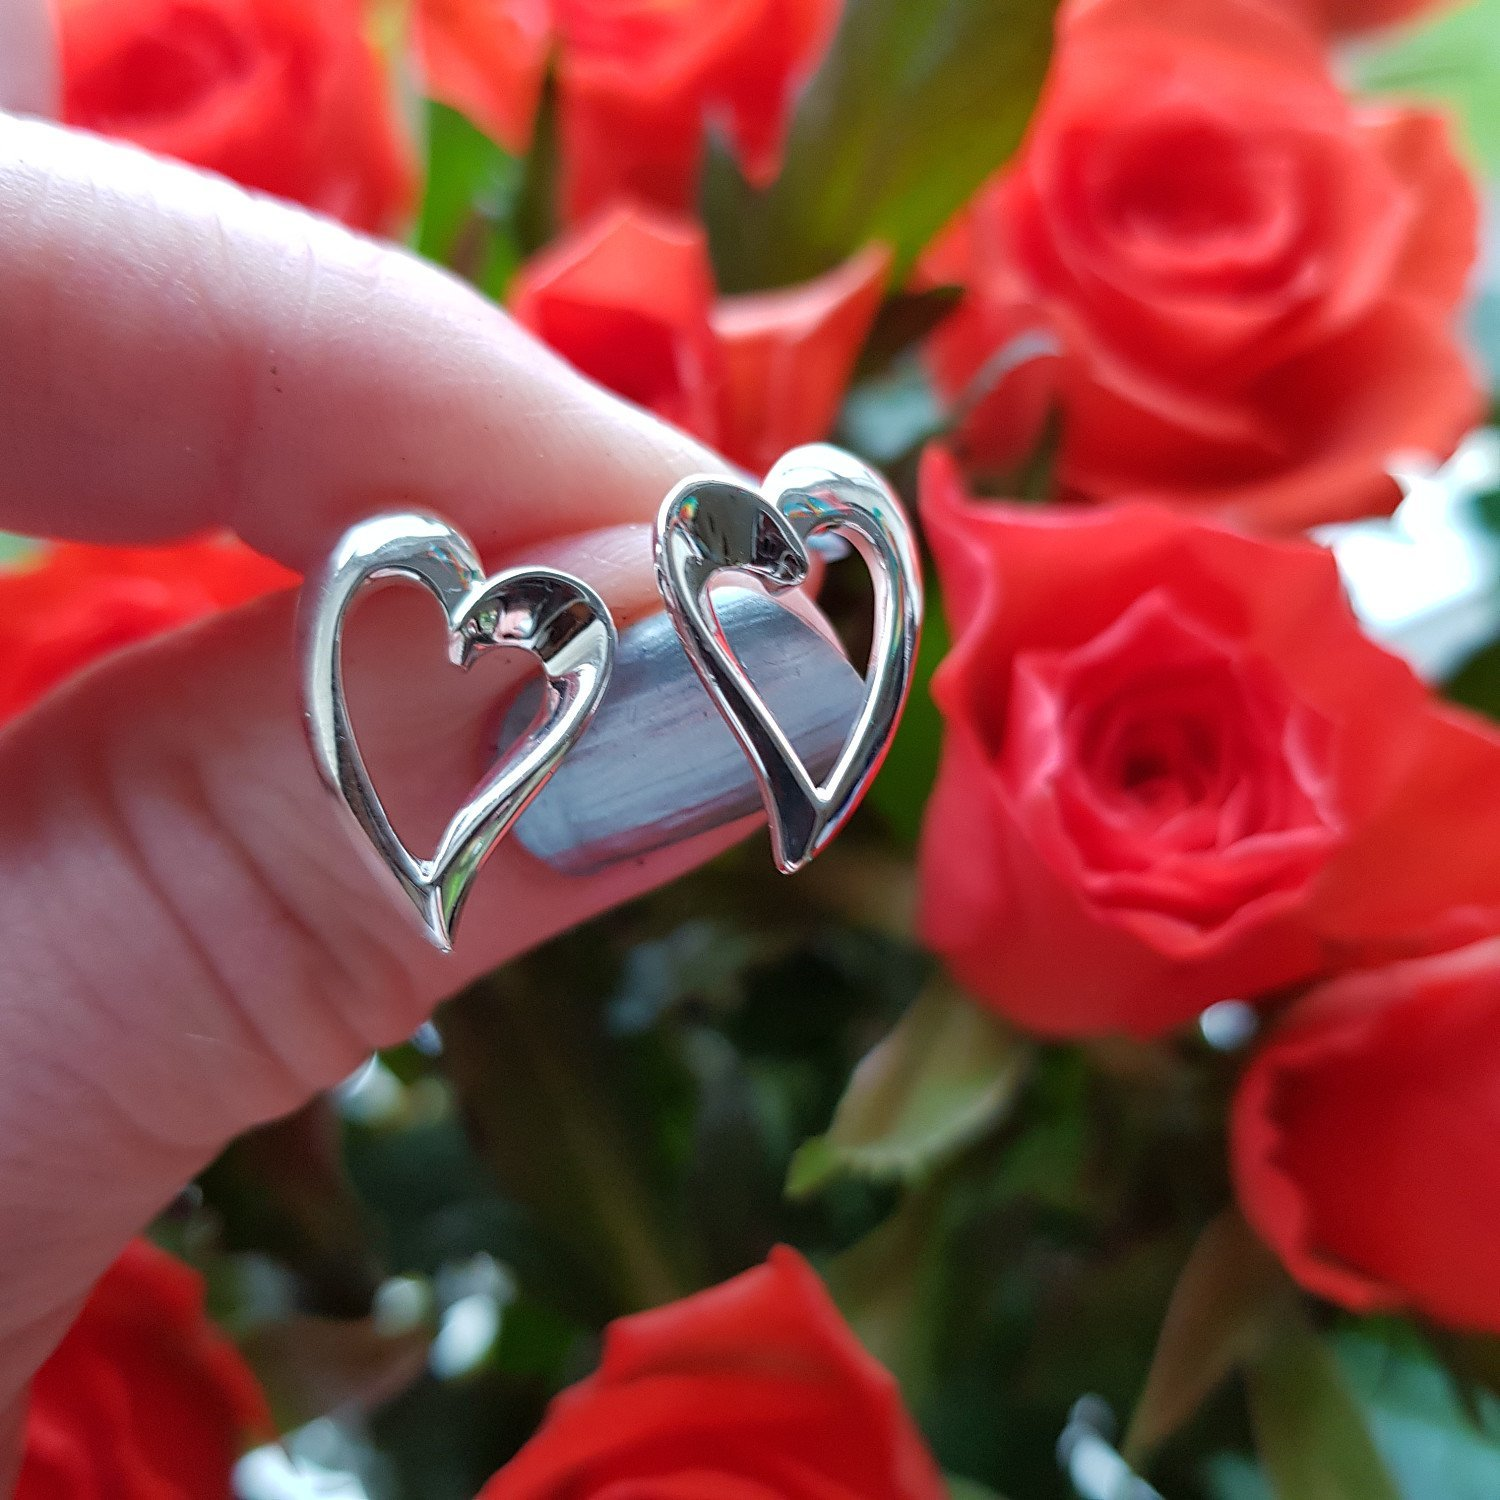 Silver heart outline earrings from Callibeau Jewellery only £24.50, boxed - free UK delivery